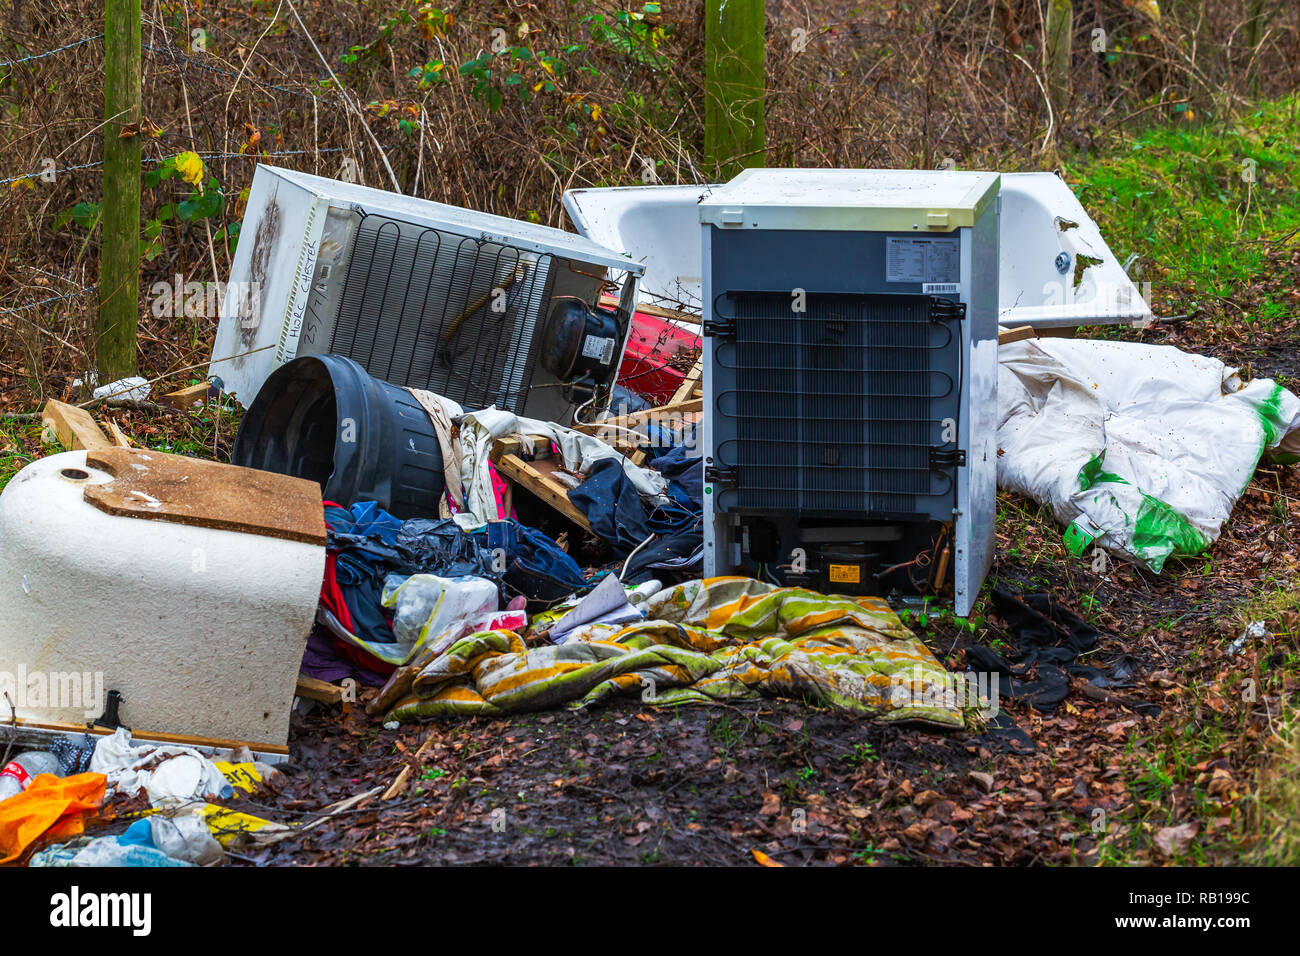 Fly tipping rubbish in the Cheshire countryside - Stock Image